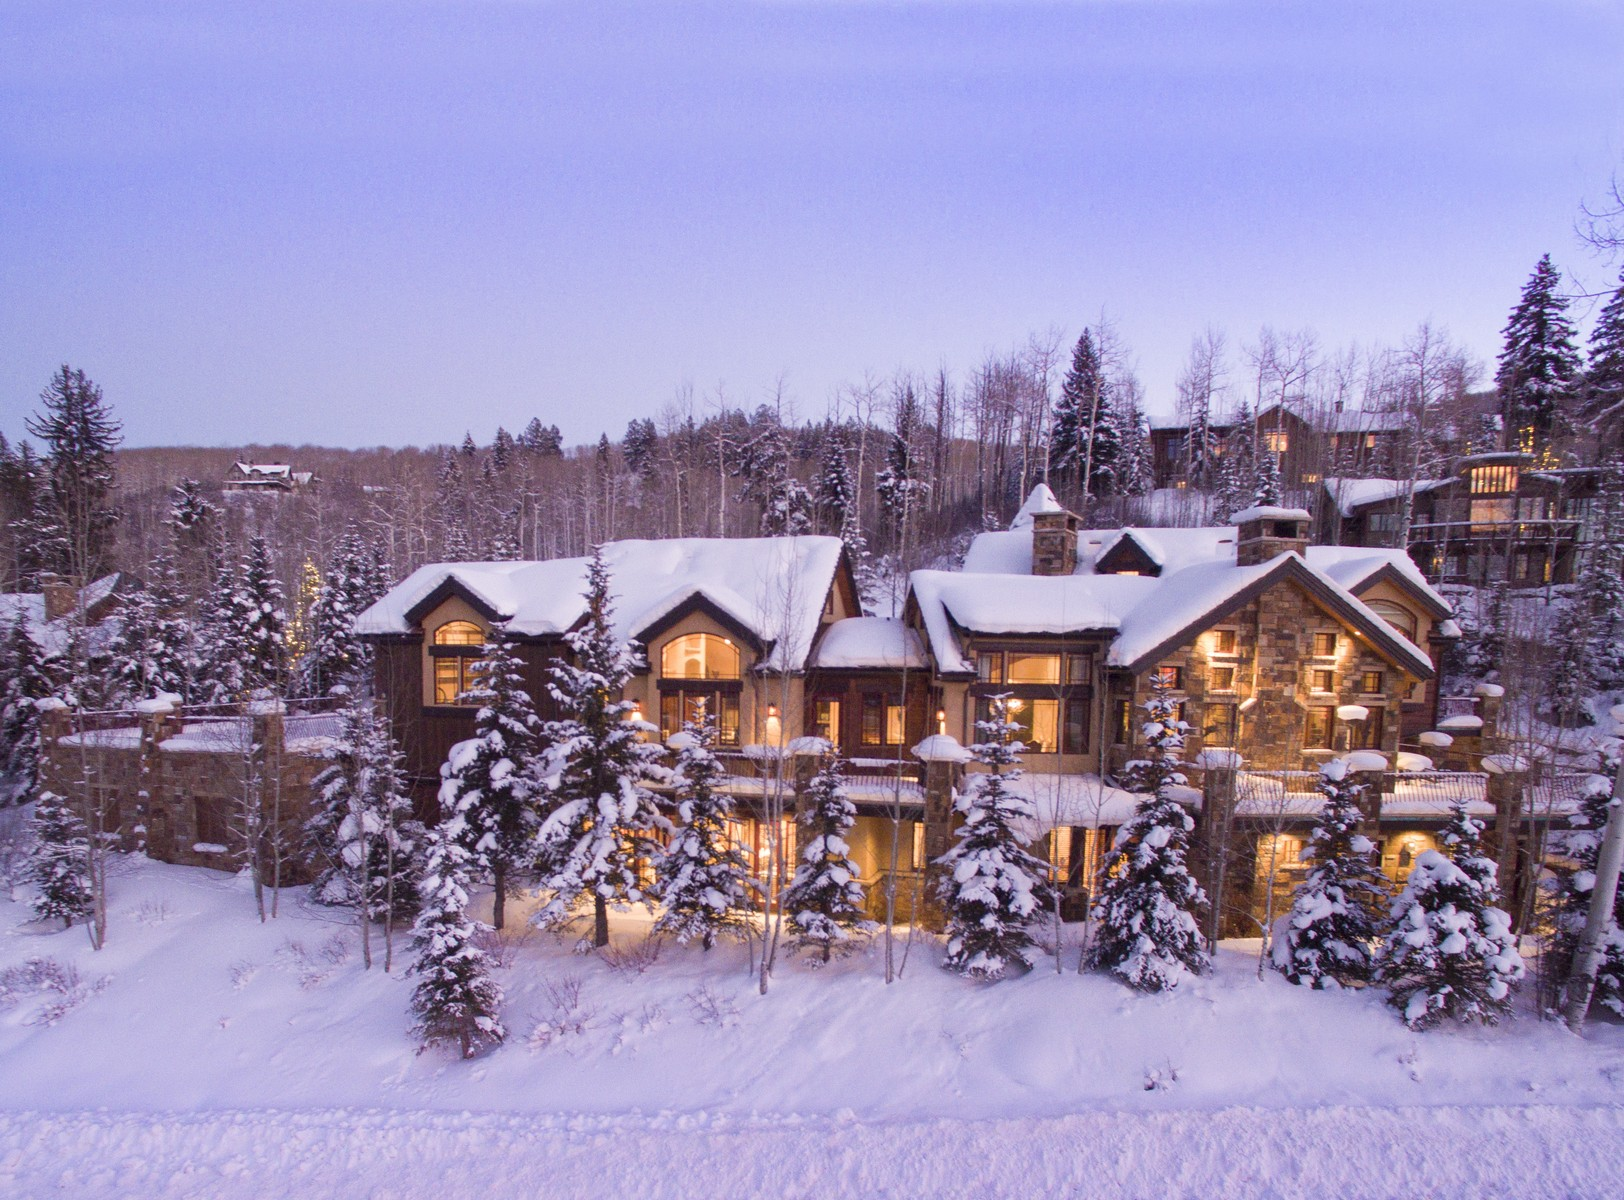 Villa per Vendita alle ore Home in The Pines 400 Pine Crest Drive Snowmass Village, Colorado, 81615 Stati Uniti